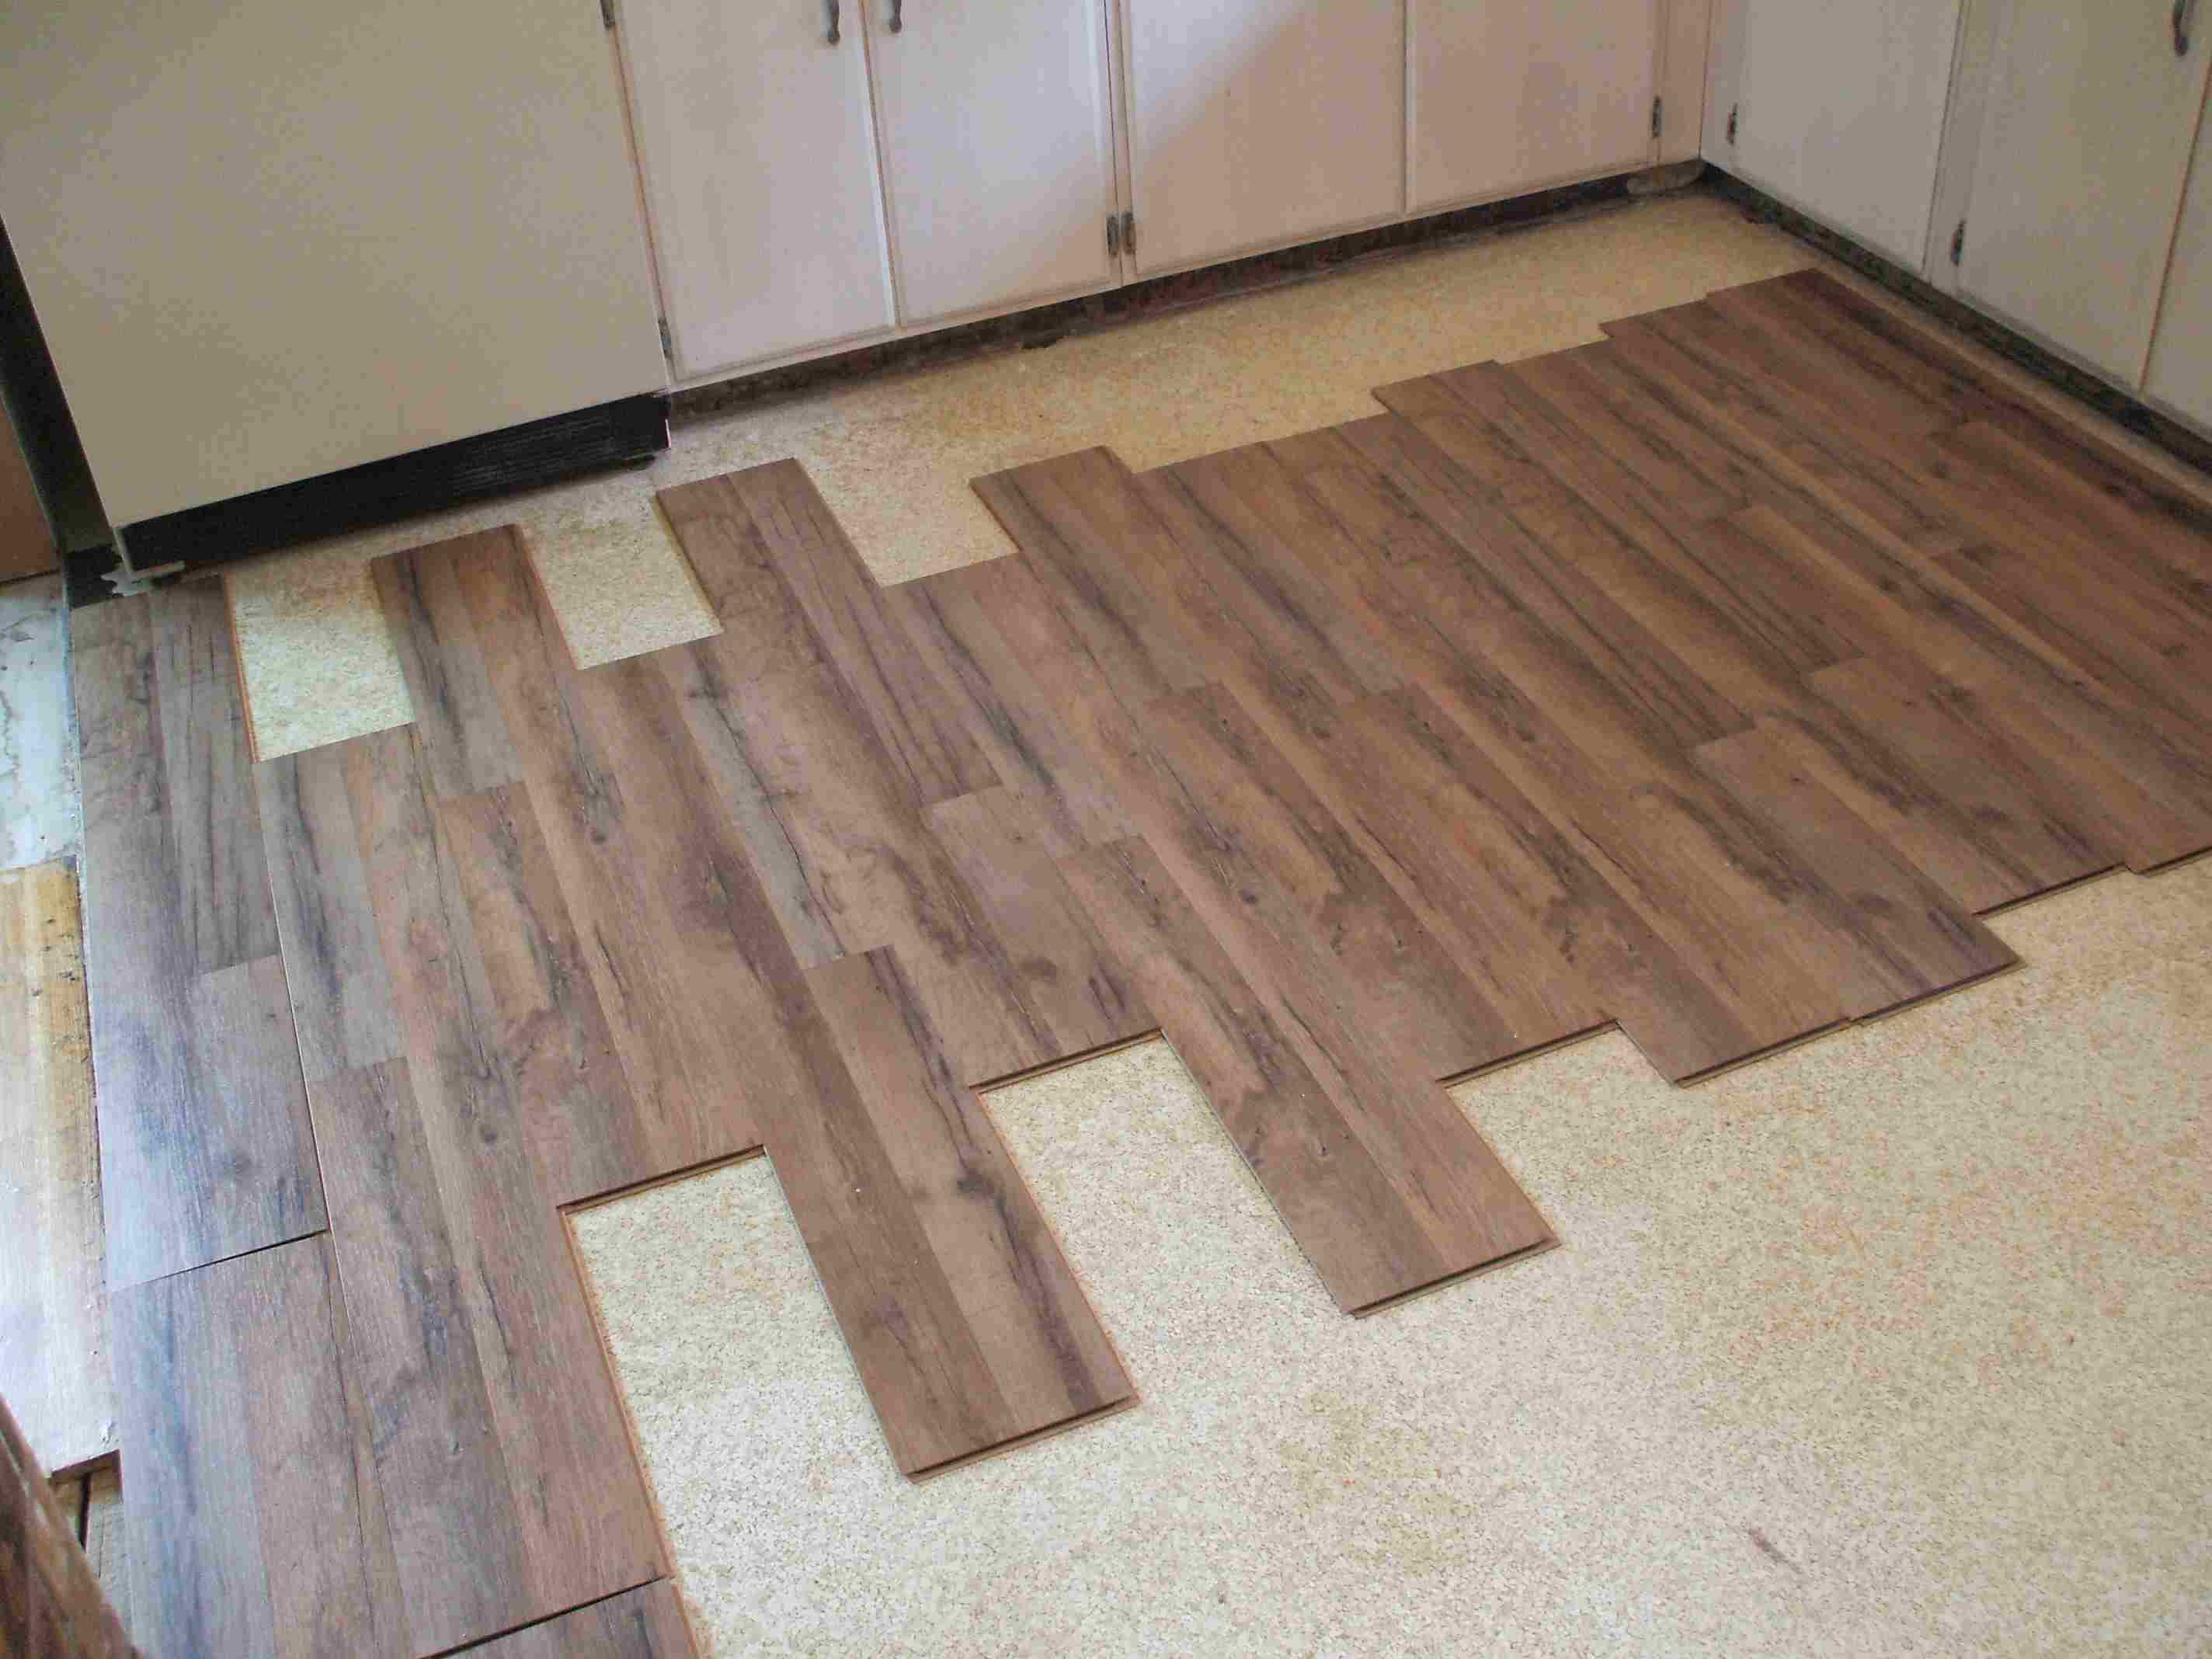 putting hardwood floors on concrete of laminate flooring installation made easy throughout installing laminate eyeballing layout 56a49d075f9b58b7d0d7d693 jpg